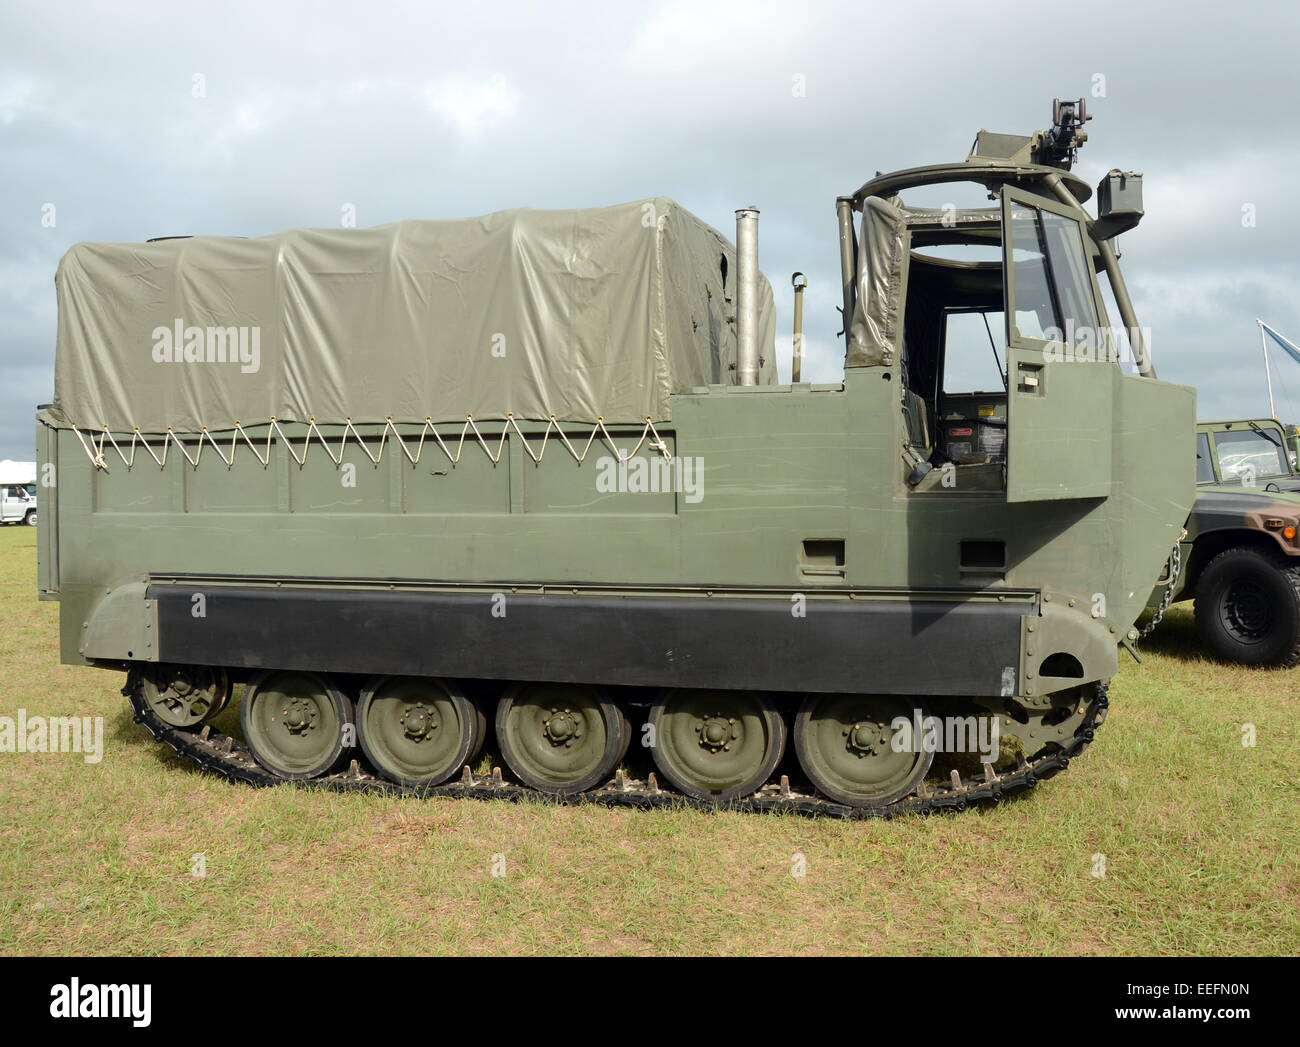 Modern military all terrain vehicle - Stock Image